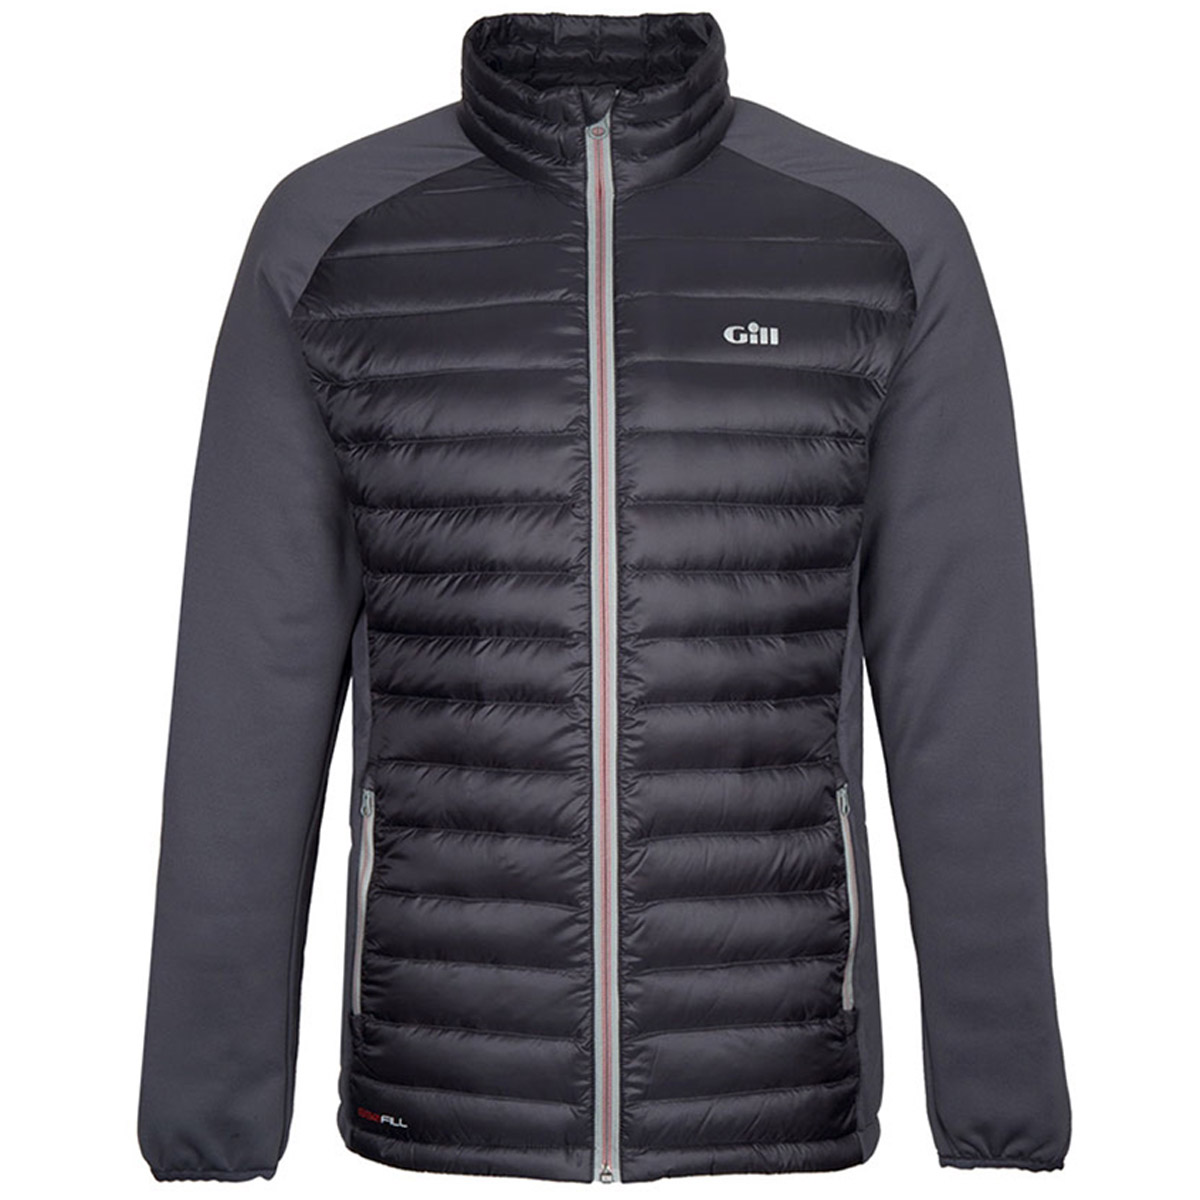 Gill Men's Hybrid Down Jacket (1064)